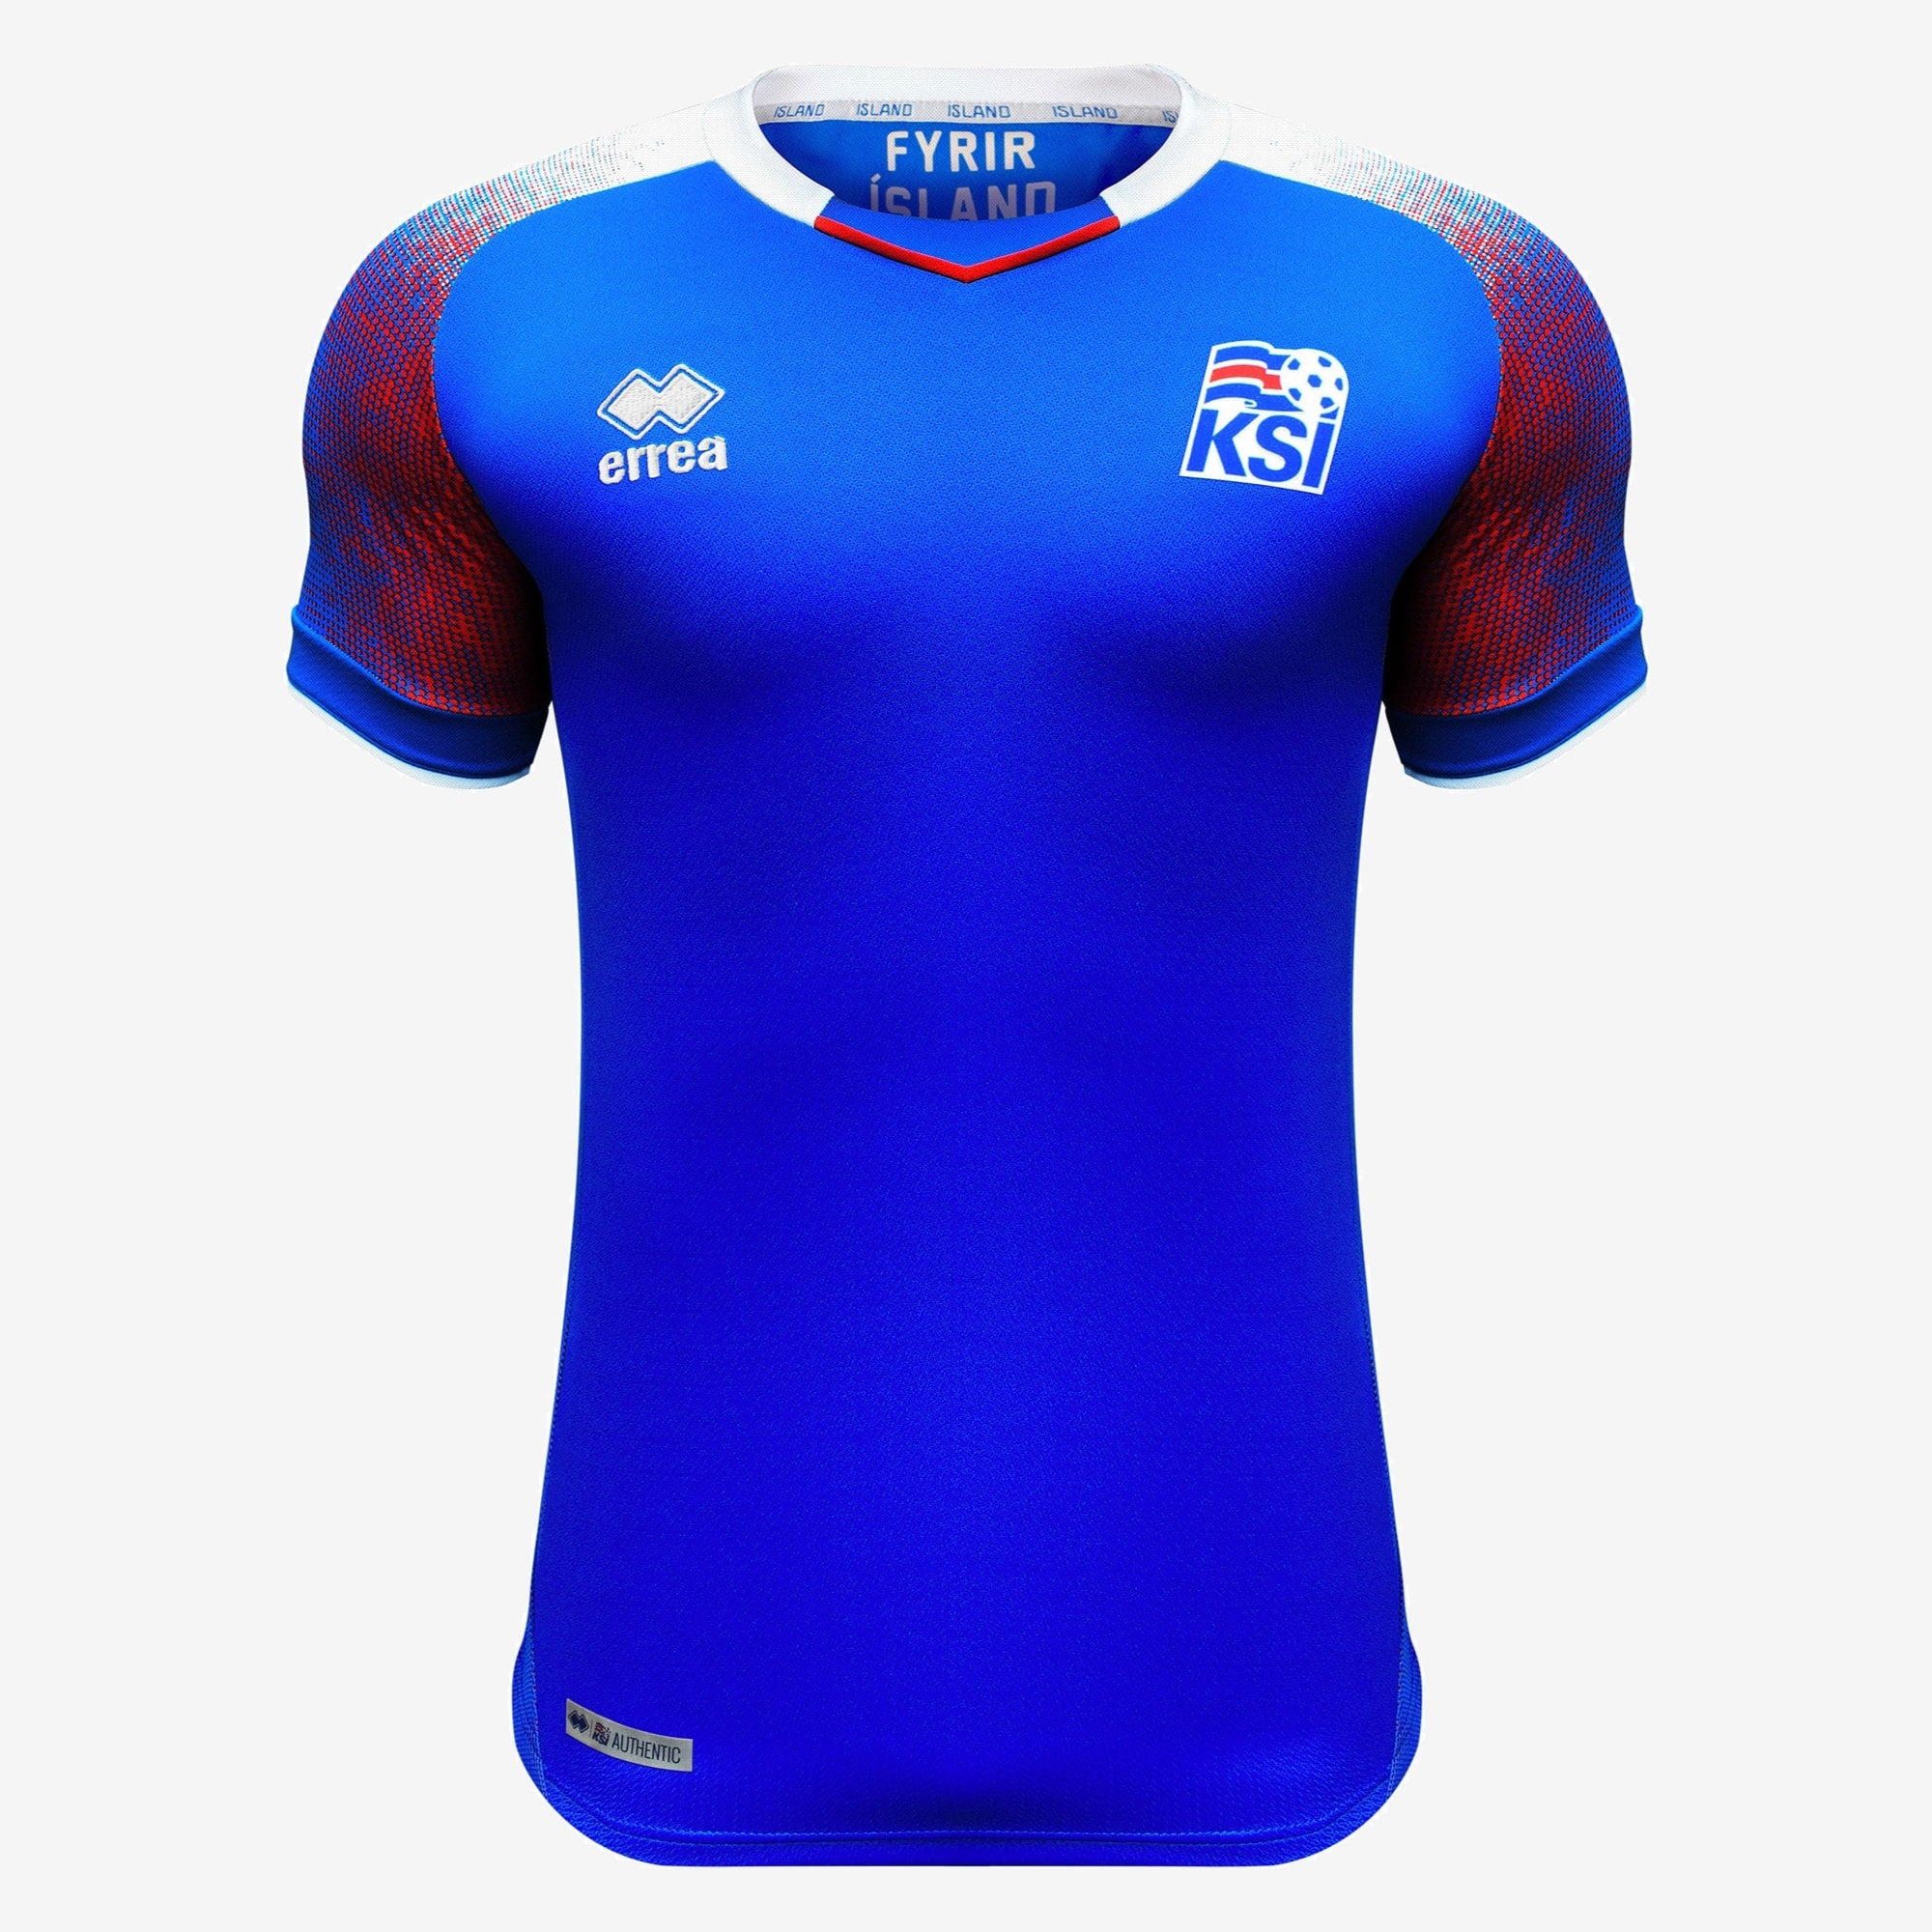 Errea - Errea Iceland Authentic Home Jersey World Cup 2018 - La Liga Soccer 517551d10